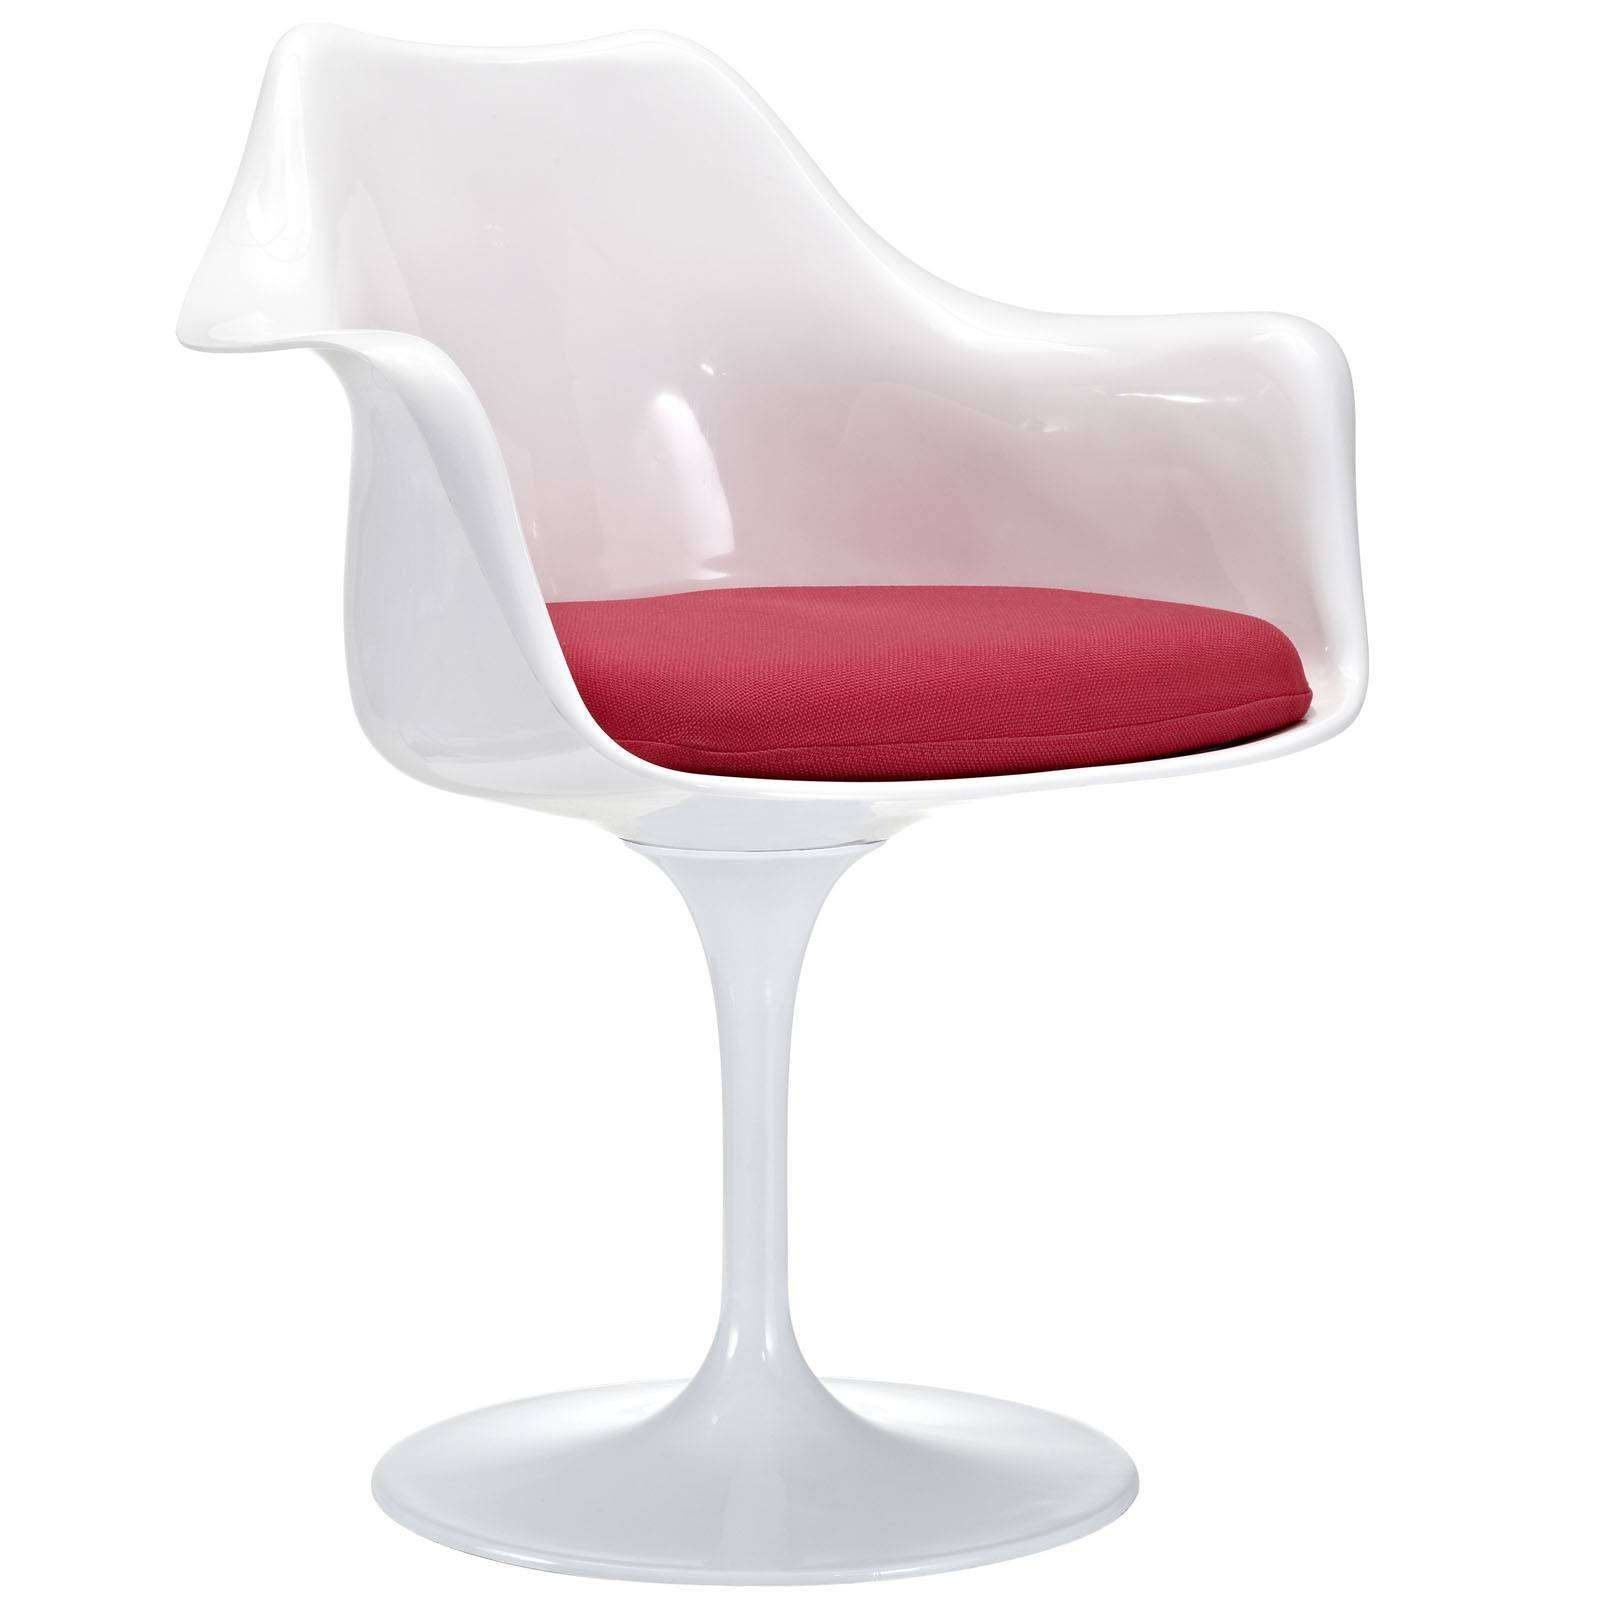 Eero Saarinen Style Tulip Arm Chair : EEI 116 RED1 from www.modterior.com size 1600 x 1600 jpeg 133kB